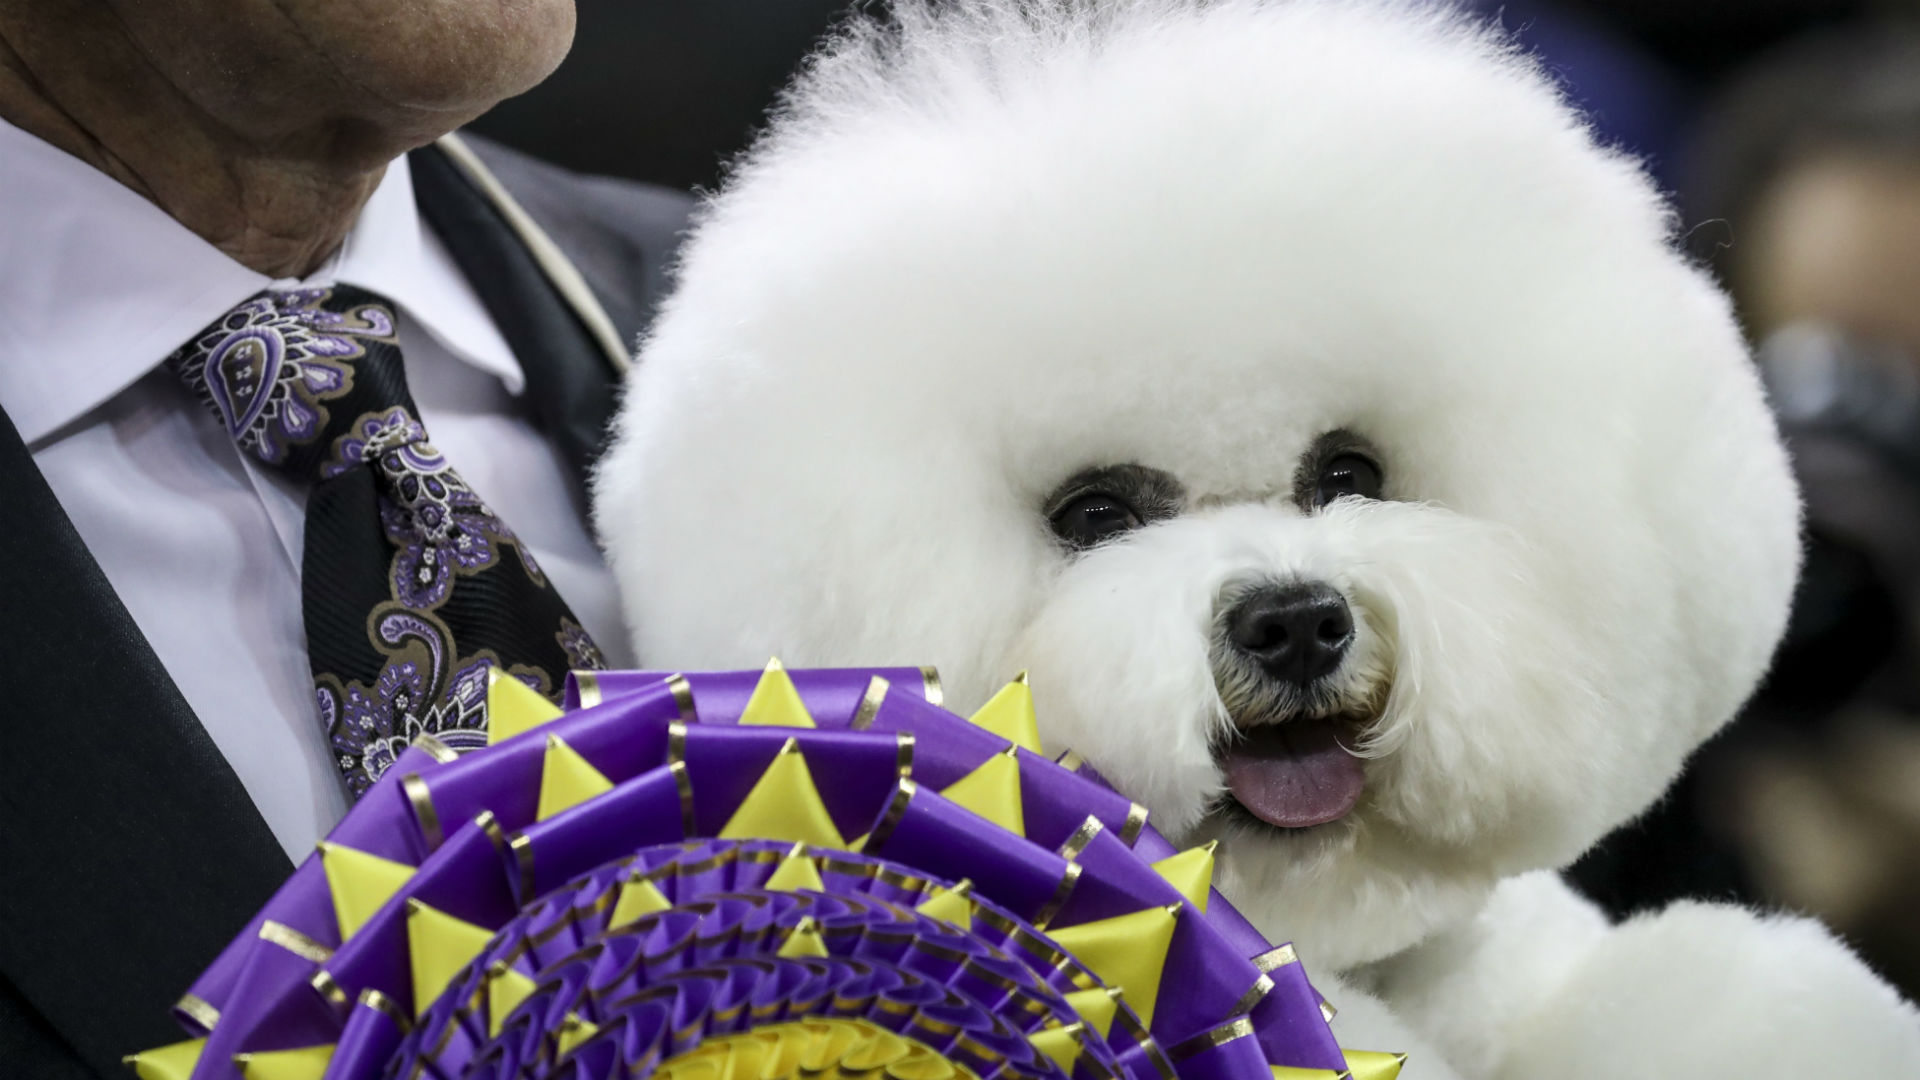 Chinese canines put their best paws forward at Westminster Dog Show